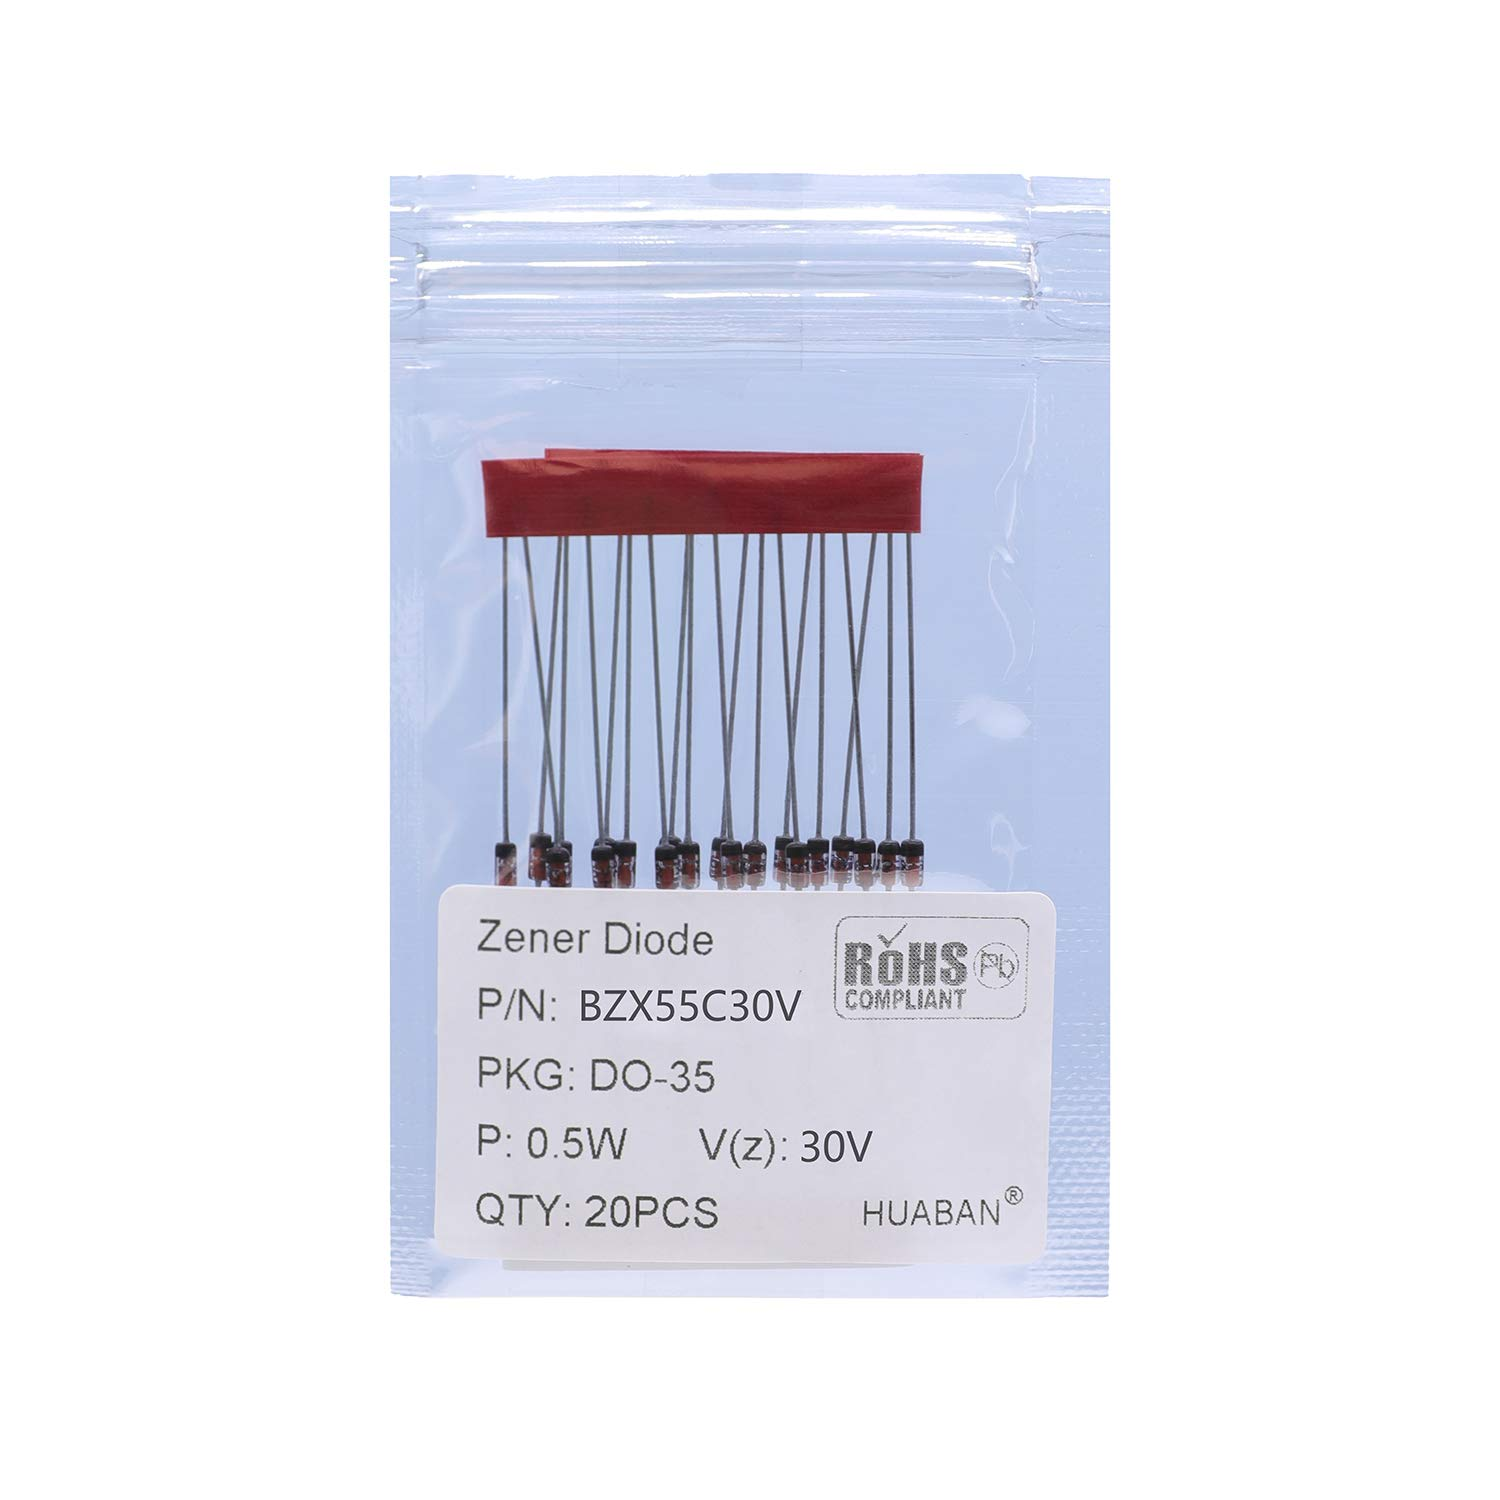 20PCS 1//2W BZX55C11V Silicon Planar Power Zener Diodes DO-35 Axial Diode 0.5W 11V